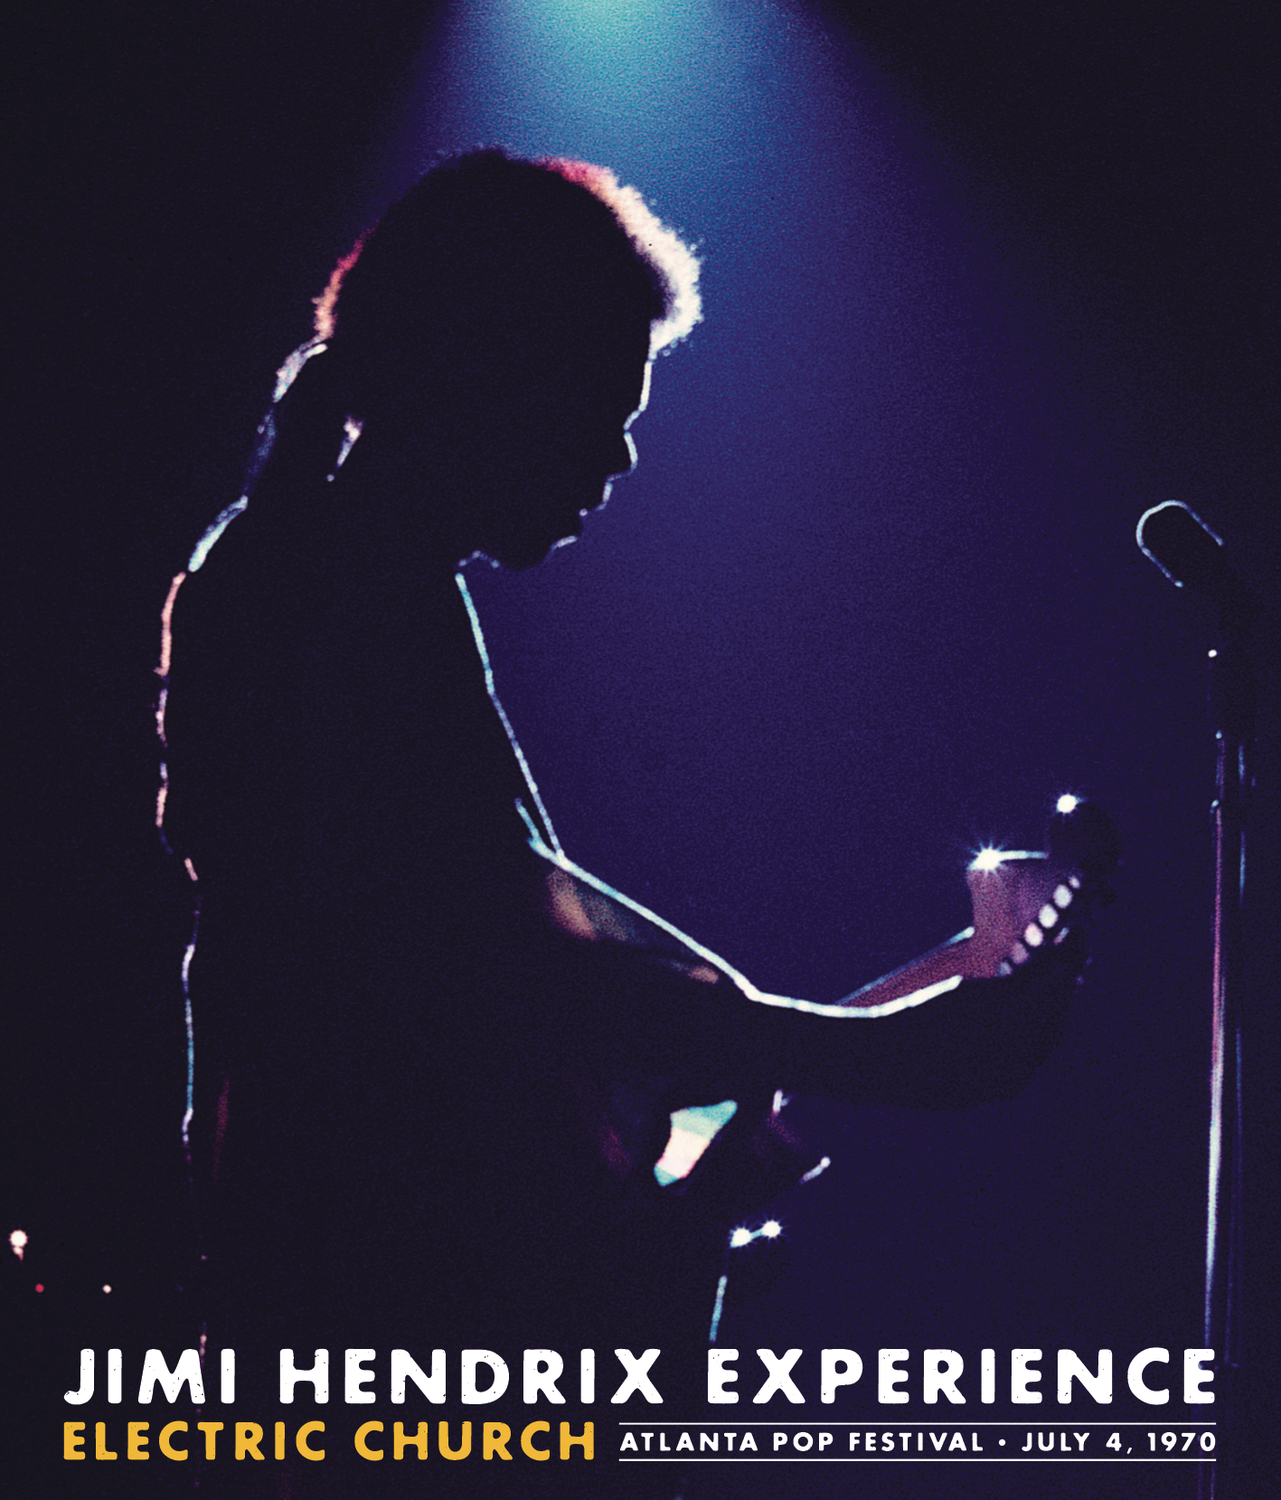 Jimi Hendrix Experience: Electric Church - Atlanta Pop Festival